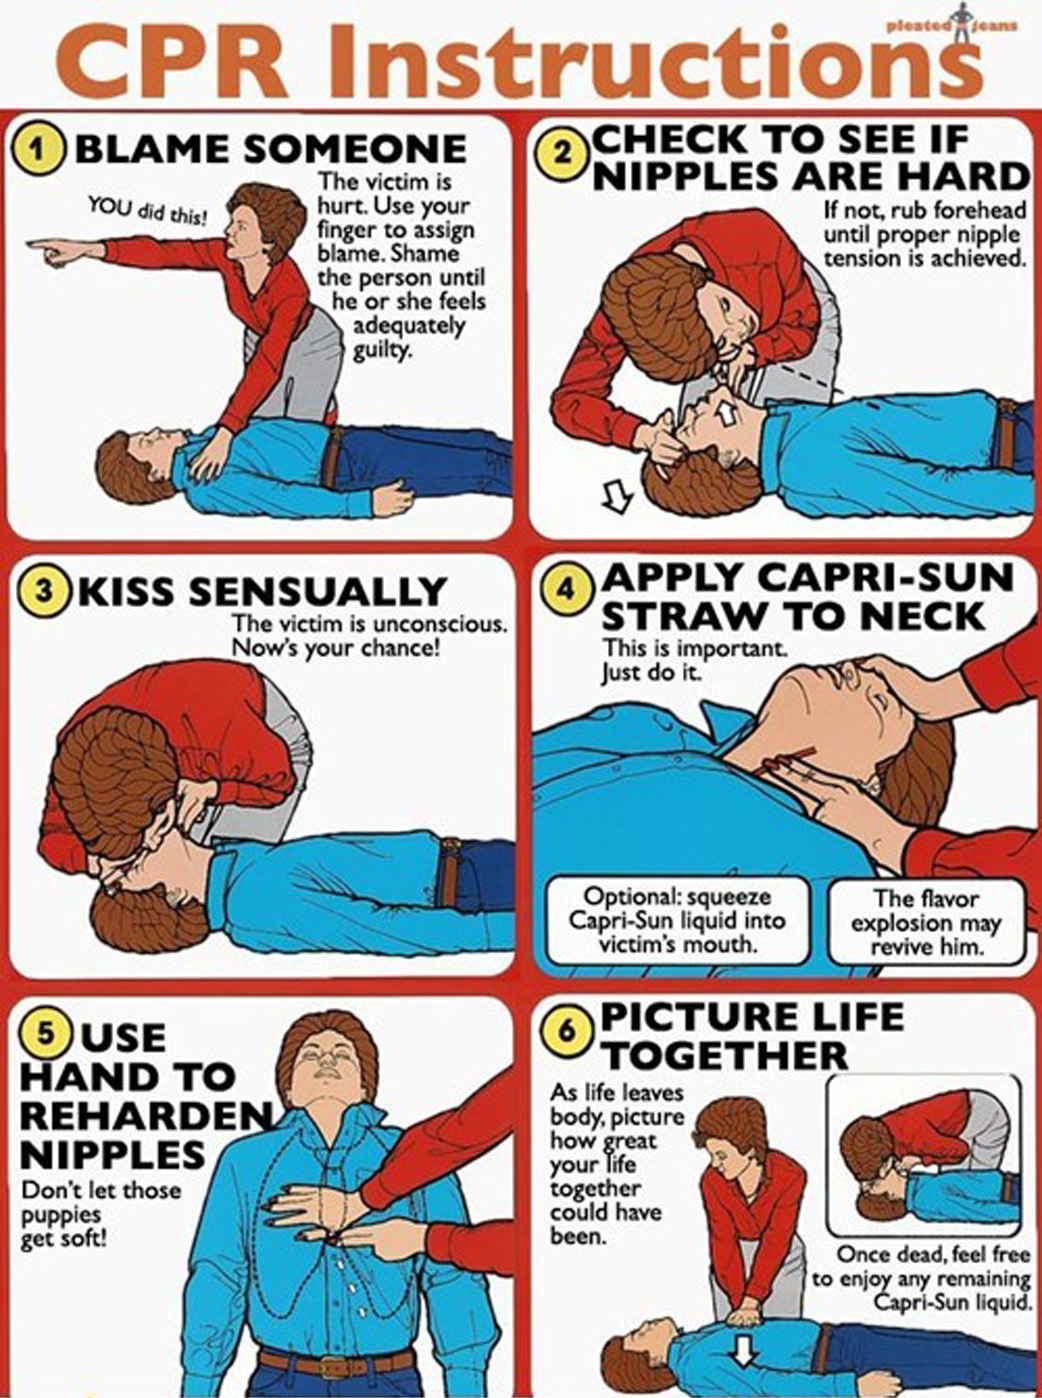 Cpr Instructions Safety Instruction Parodies Know Your Meme